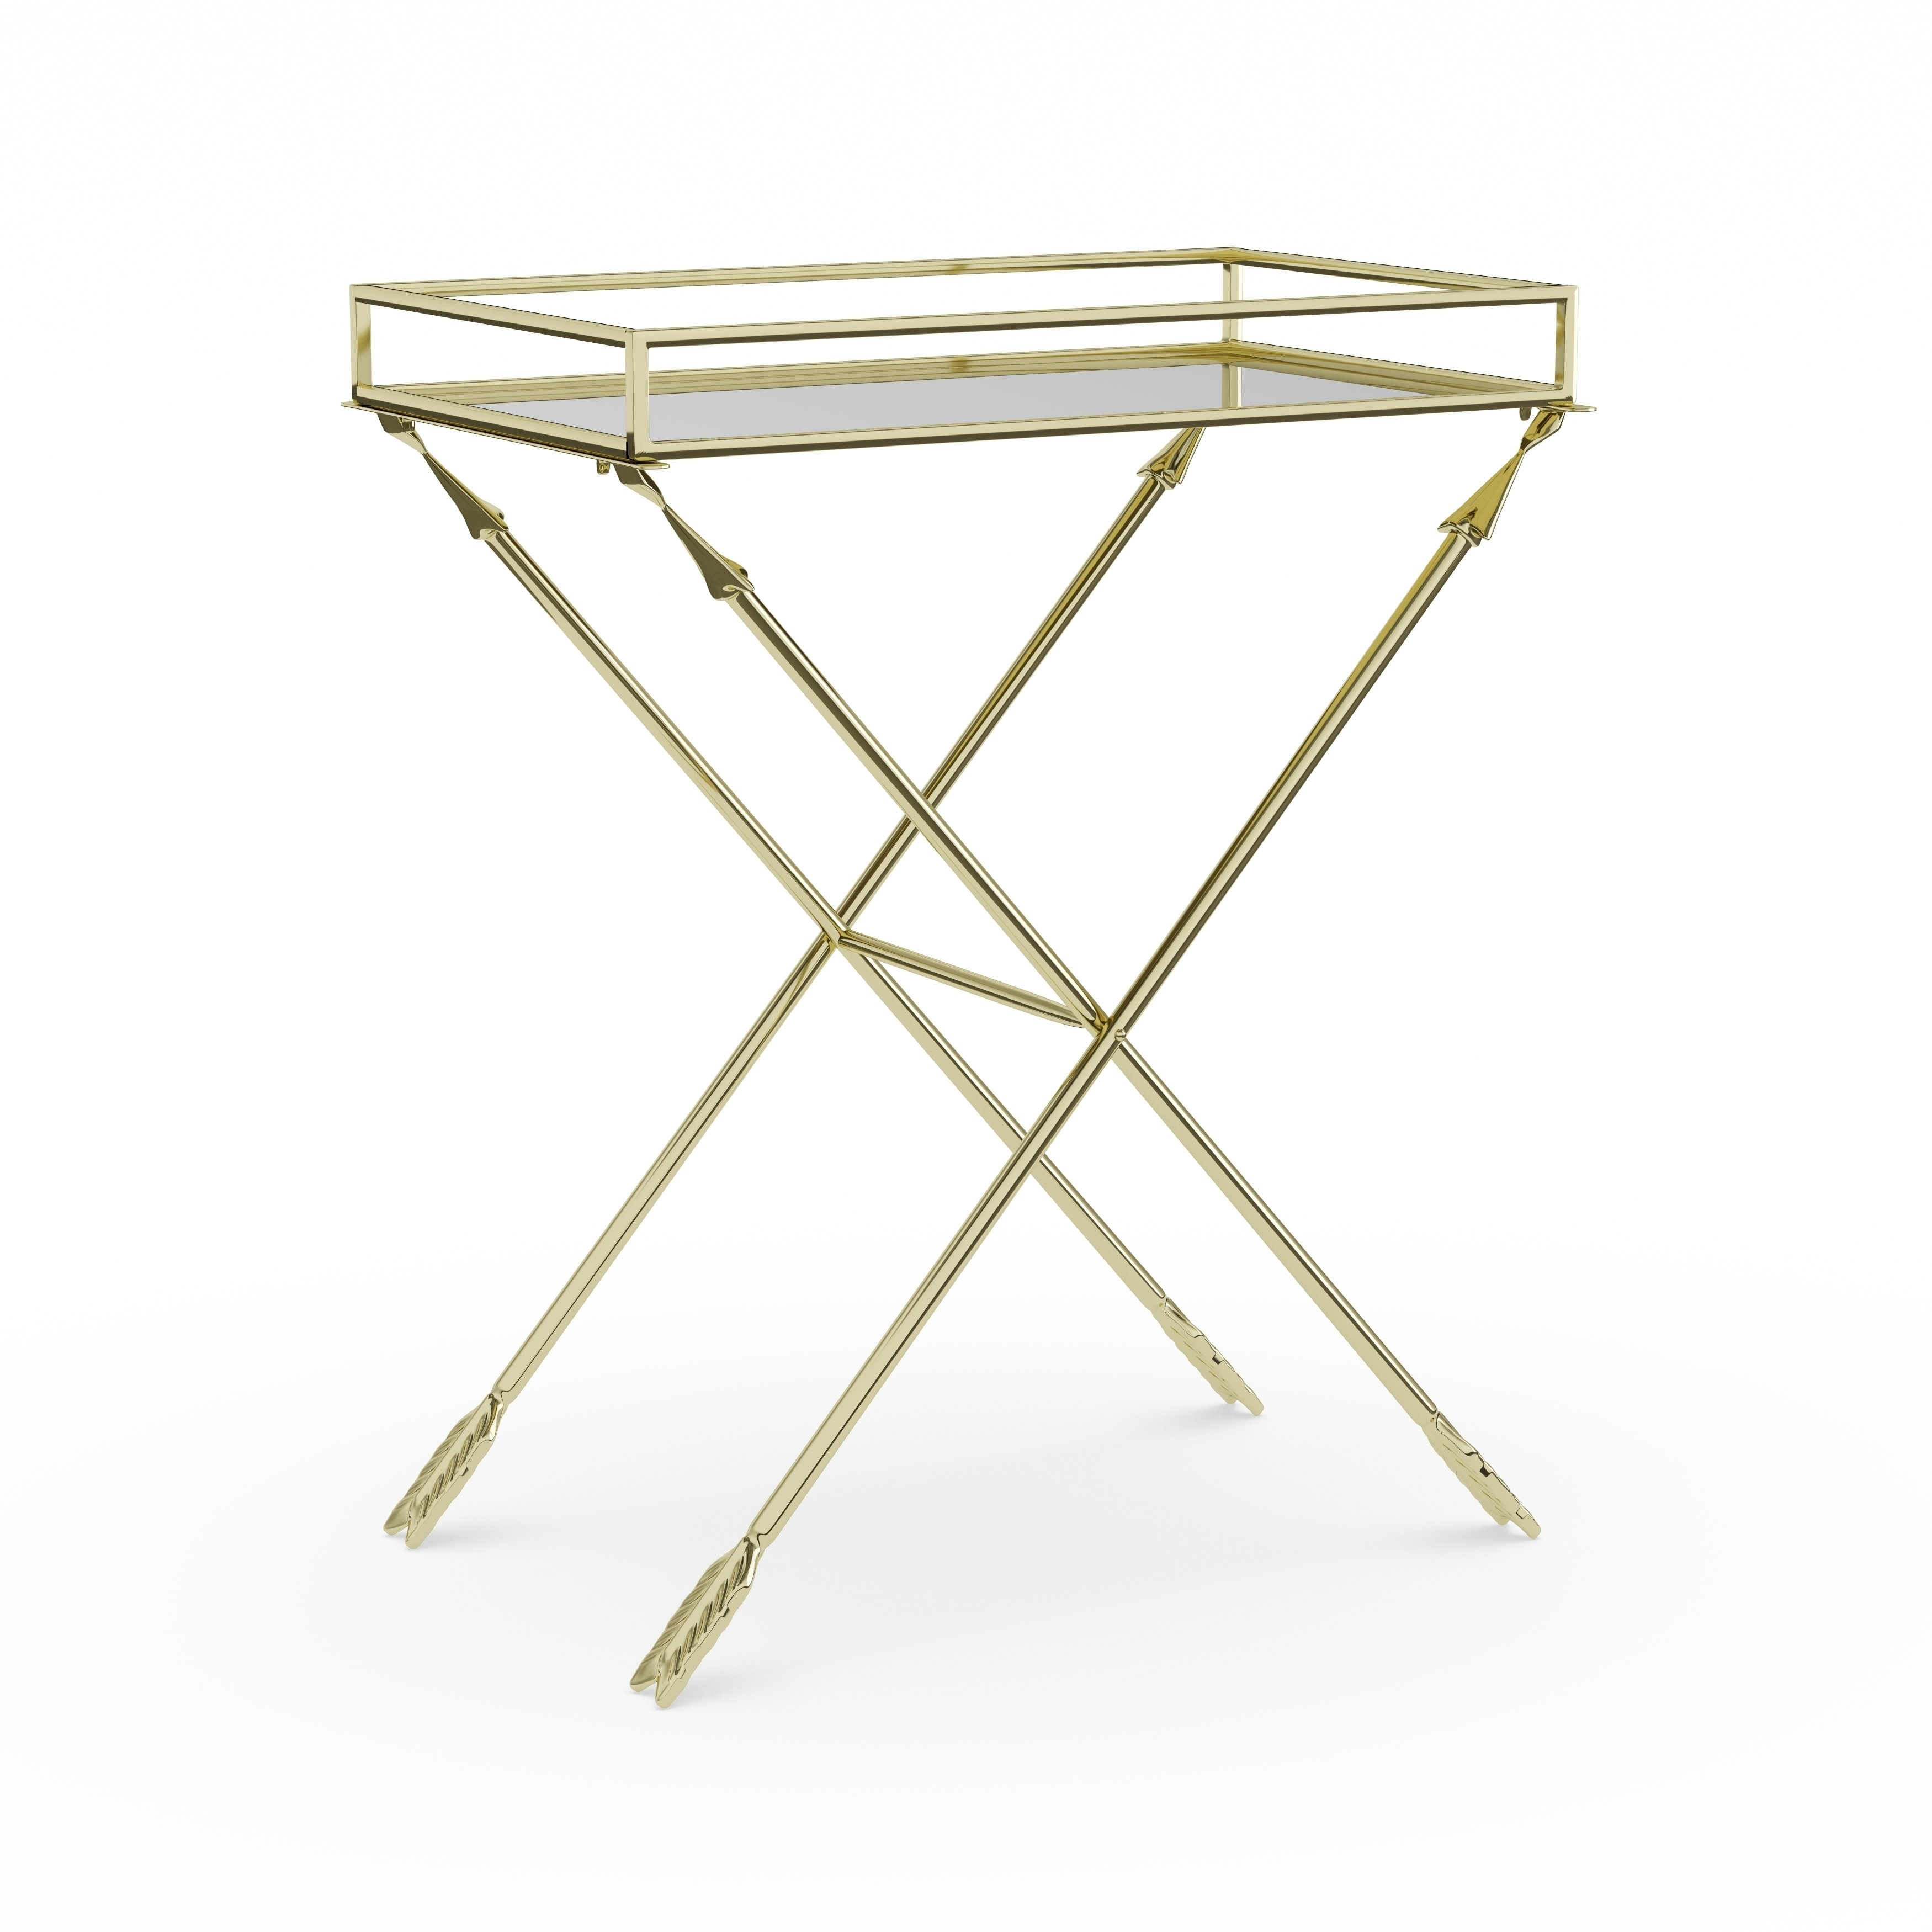 silver orchid jalabert arrow metal accent table with mirrored tray top free shipping today pier one chair covers smoked glass side tall sofa carpet termination strip wine rack